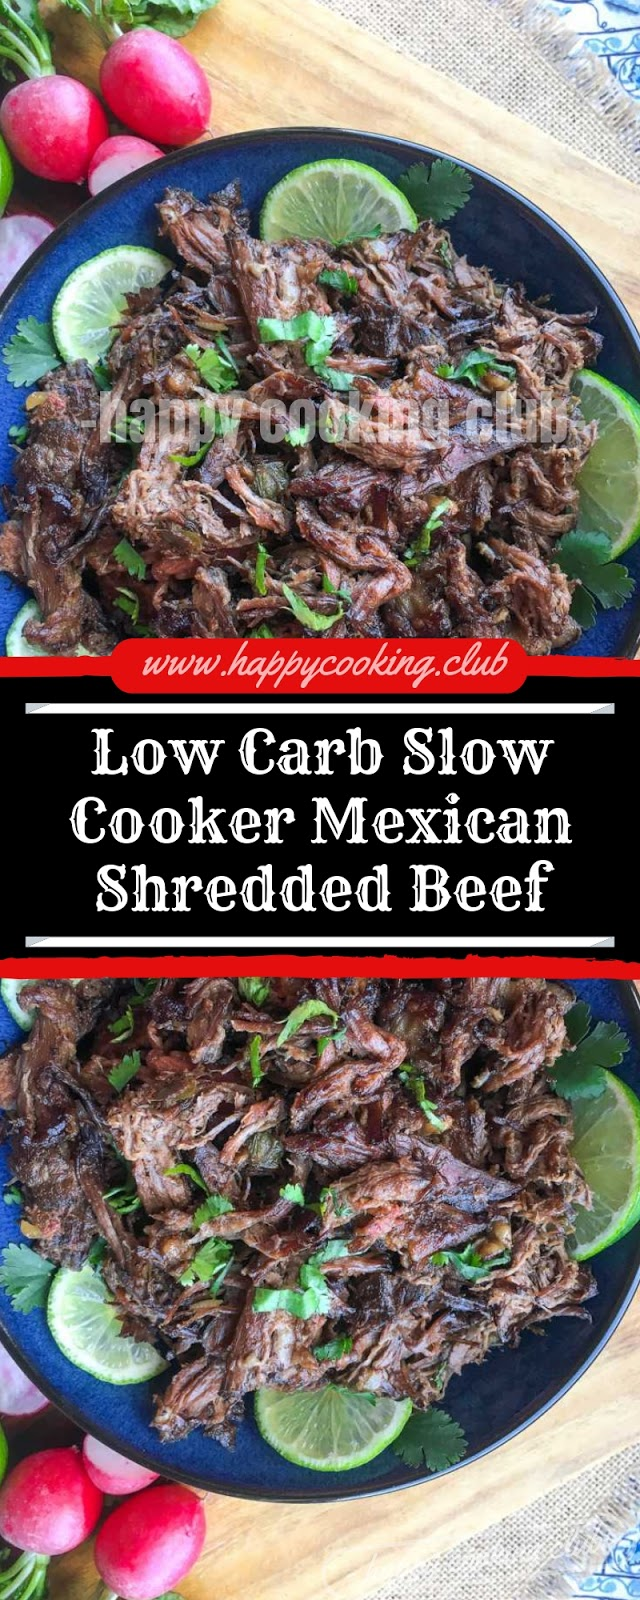 Low Carb Slow Cooker Mexican Shredded Beef